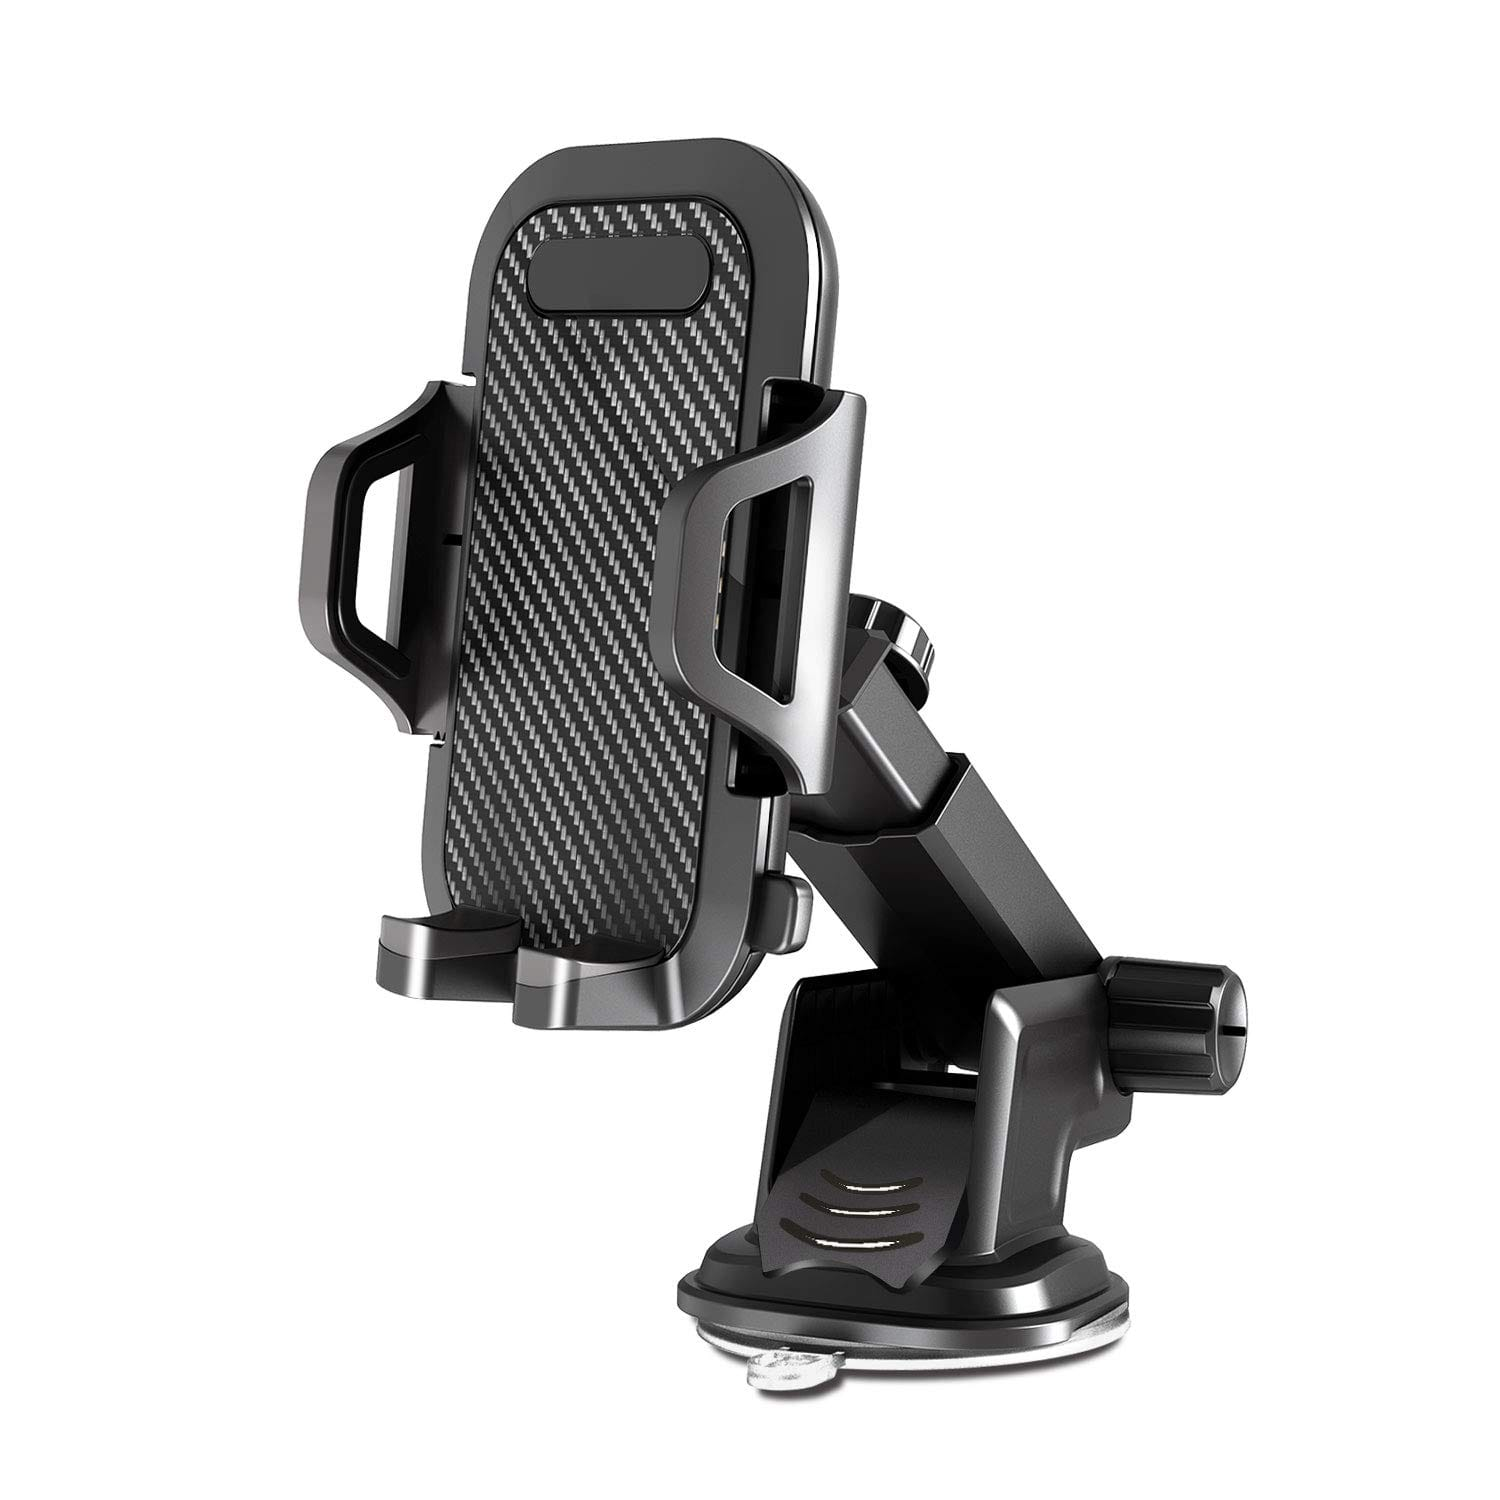 VANMASS Car Phone Mount, Dashboard Windshield Air Vent 14.39 (lowest per CCC) $14.39